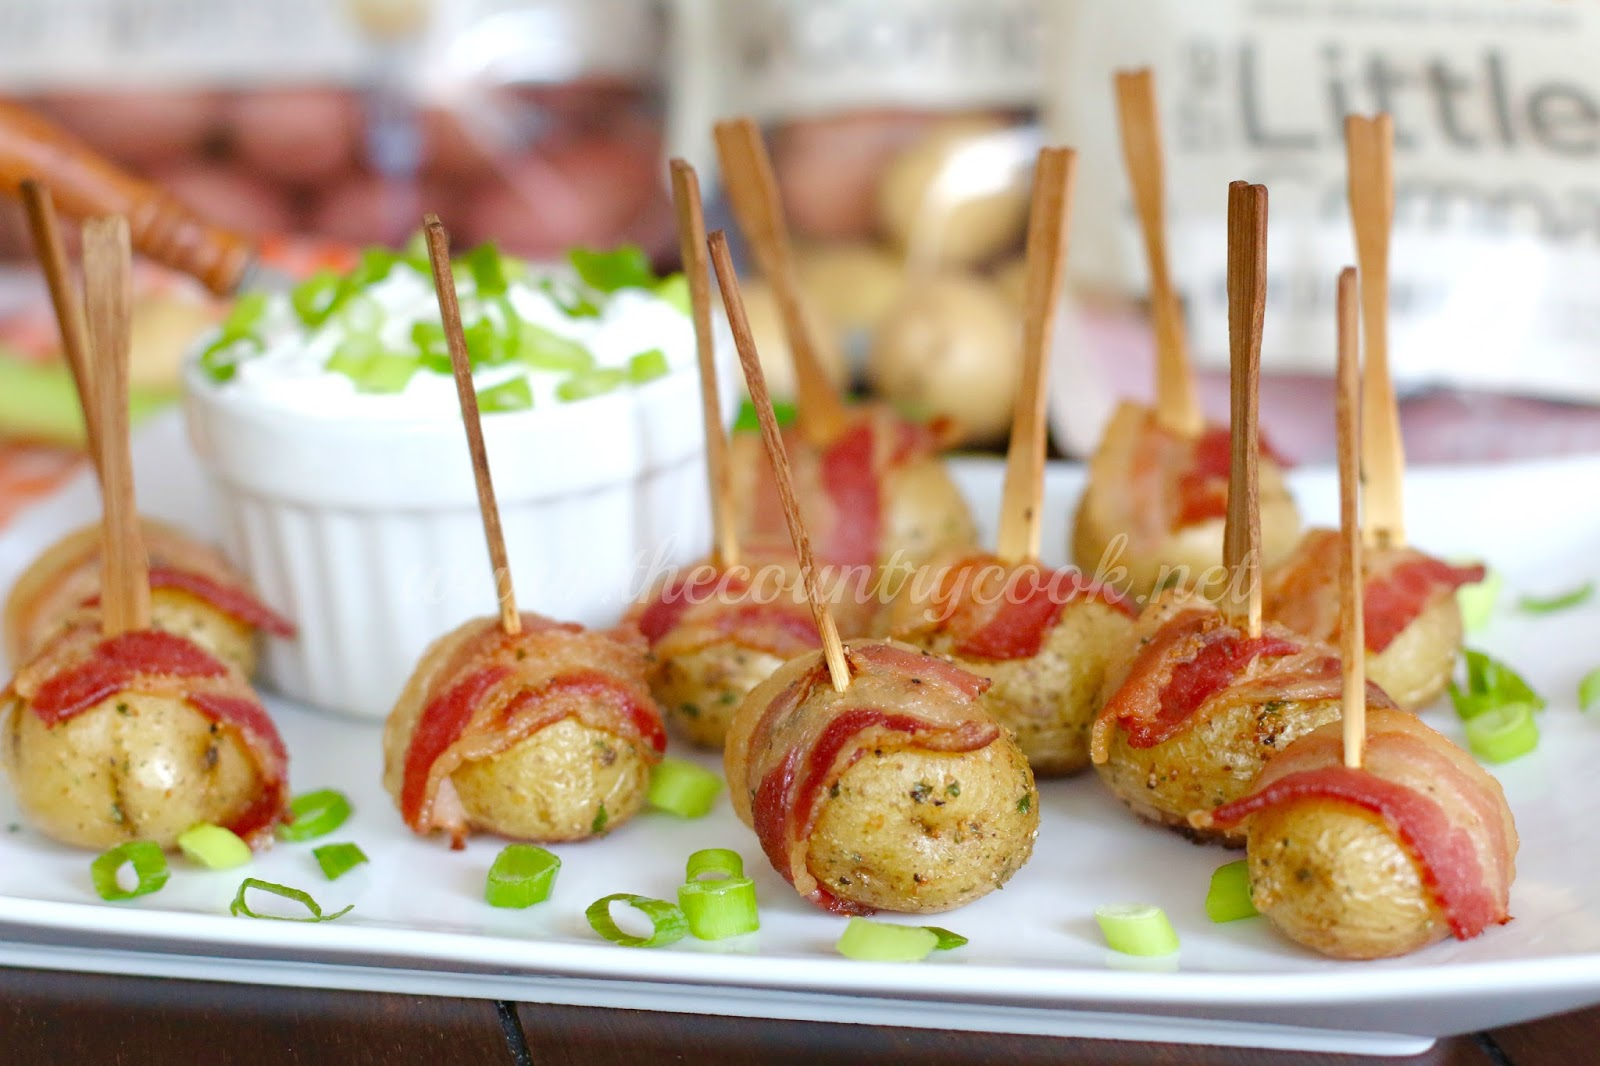 Bacon Wrapped Potatoes with Sour Cream & Onion Dip - The Country Cook